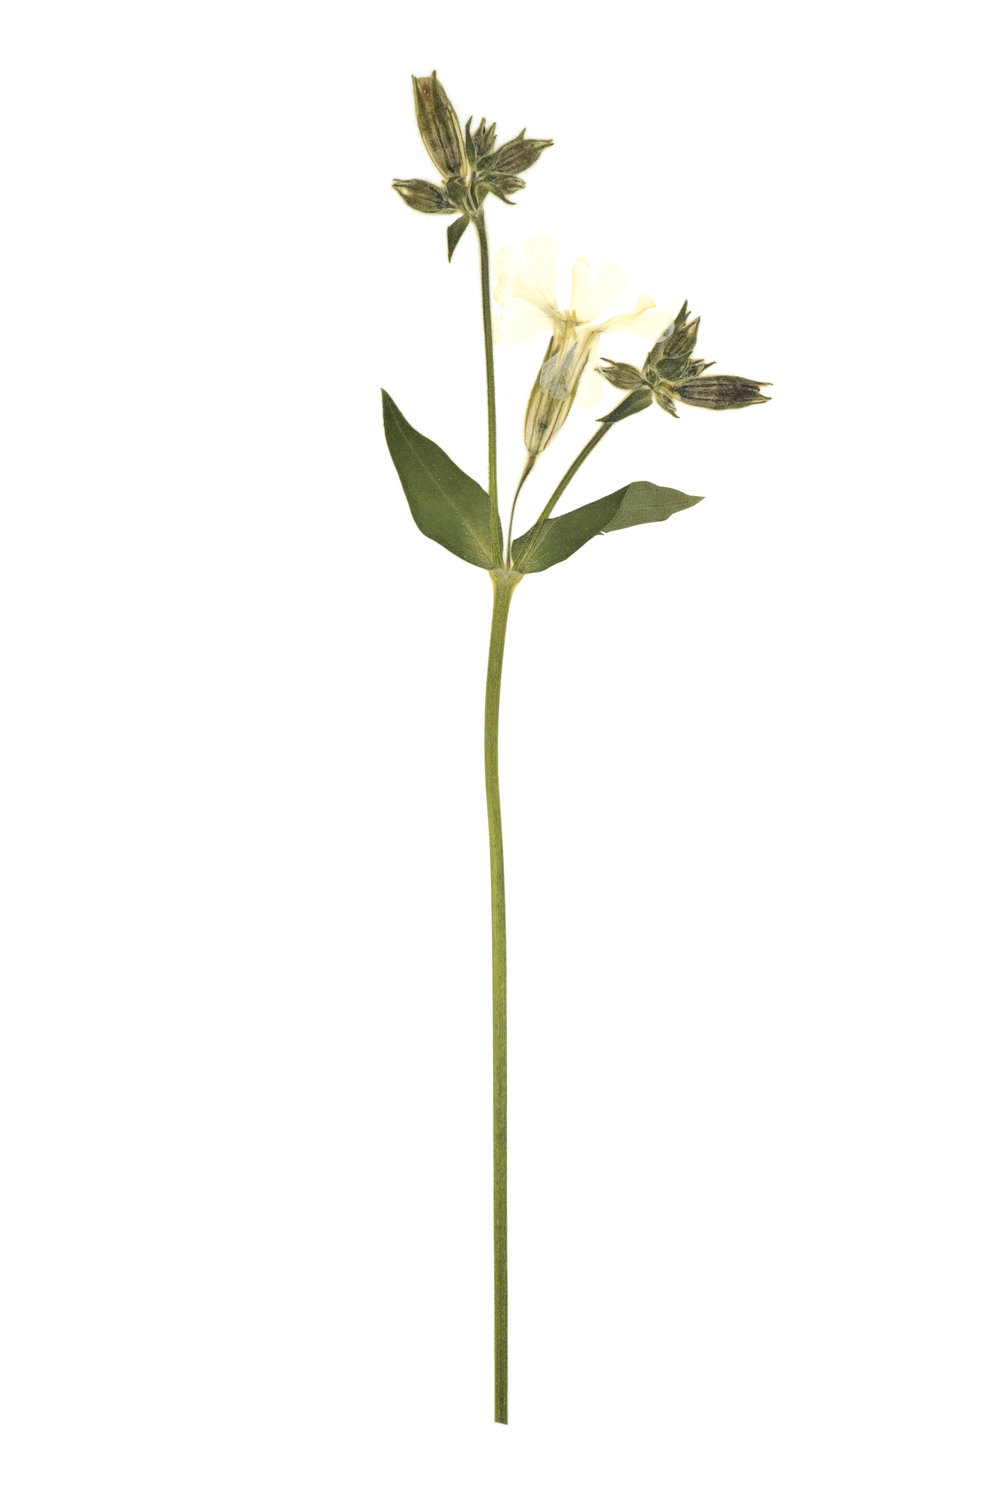 New! White Campion / Silene pratensis